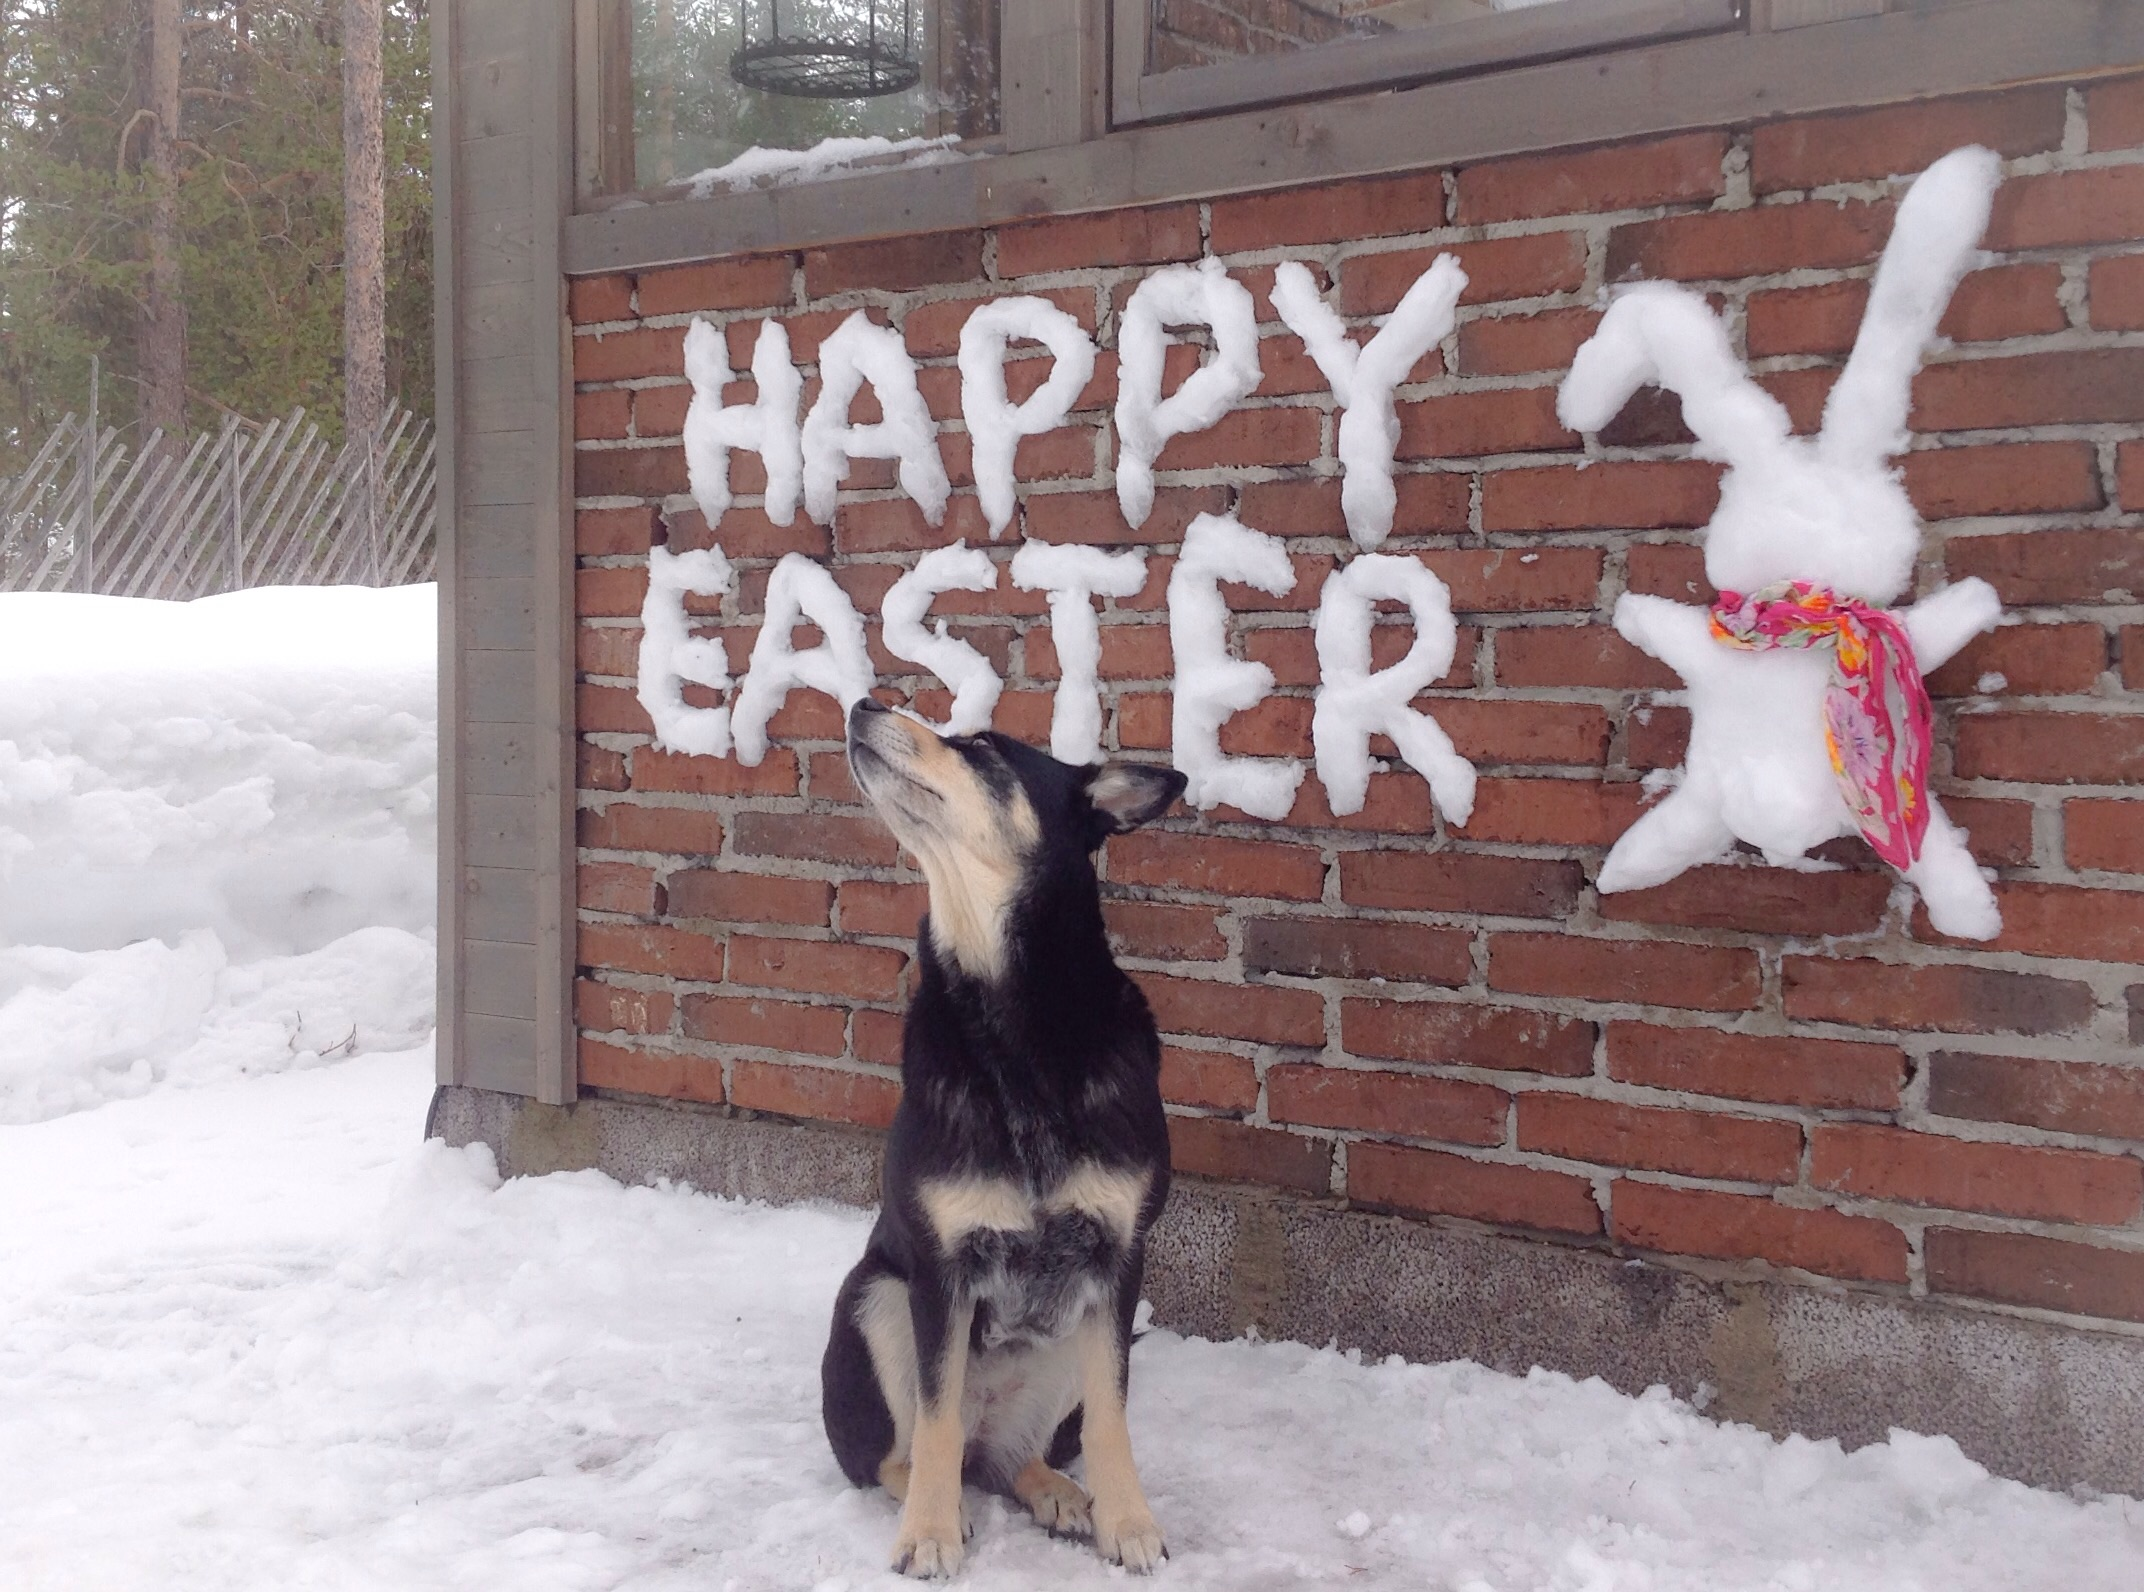 Have you seen a easter bunny?